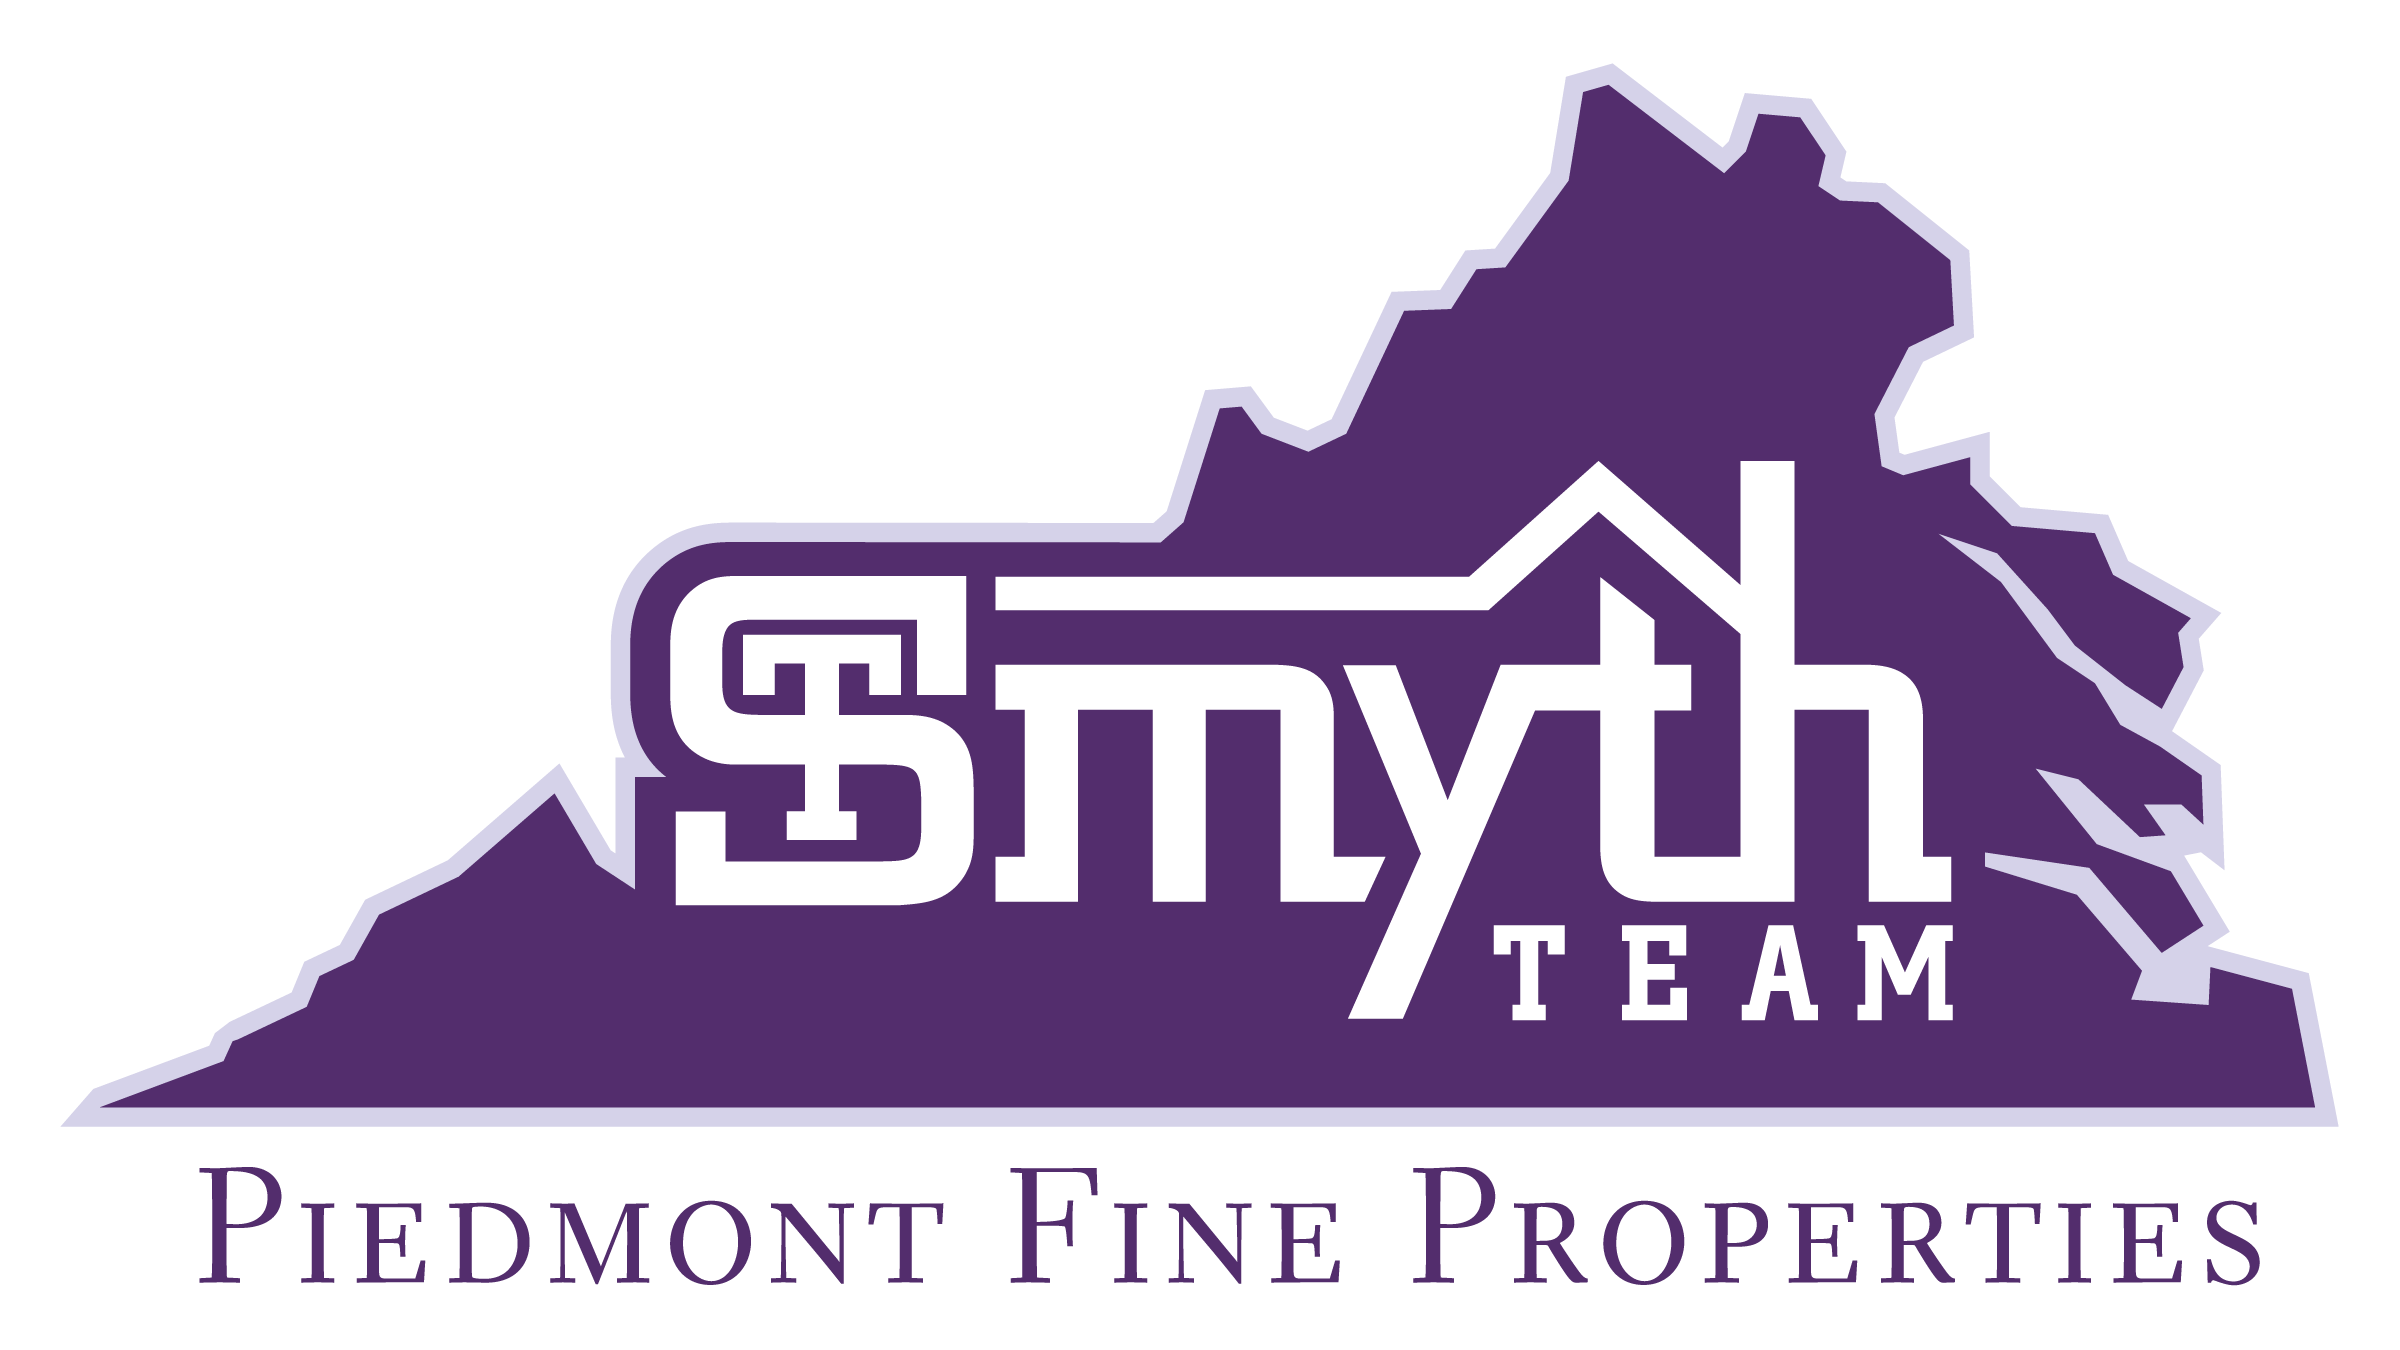 The Smyth Team, LLC